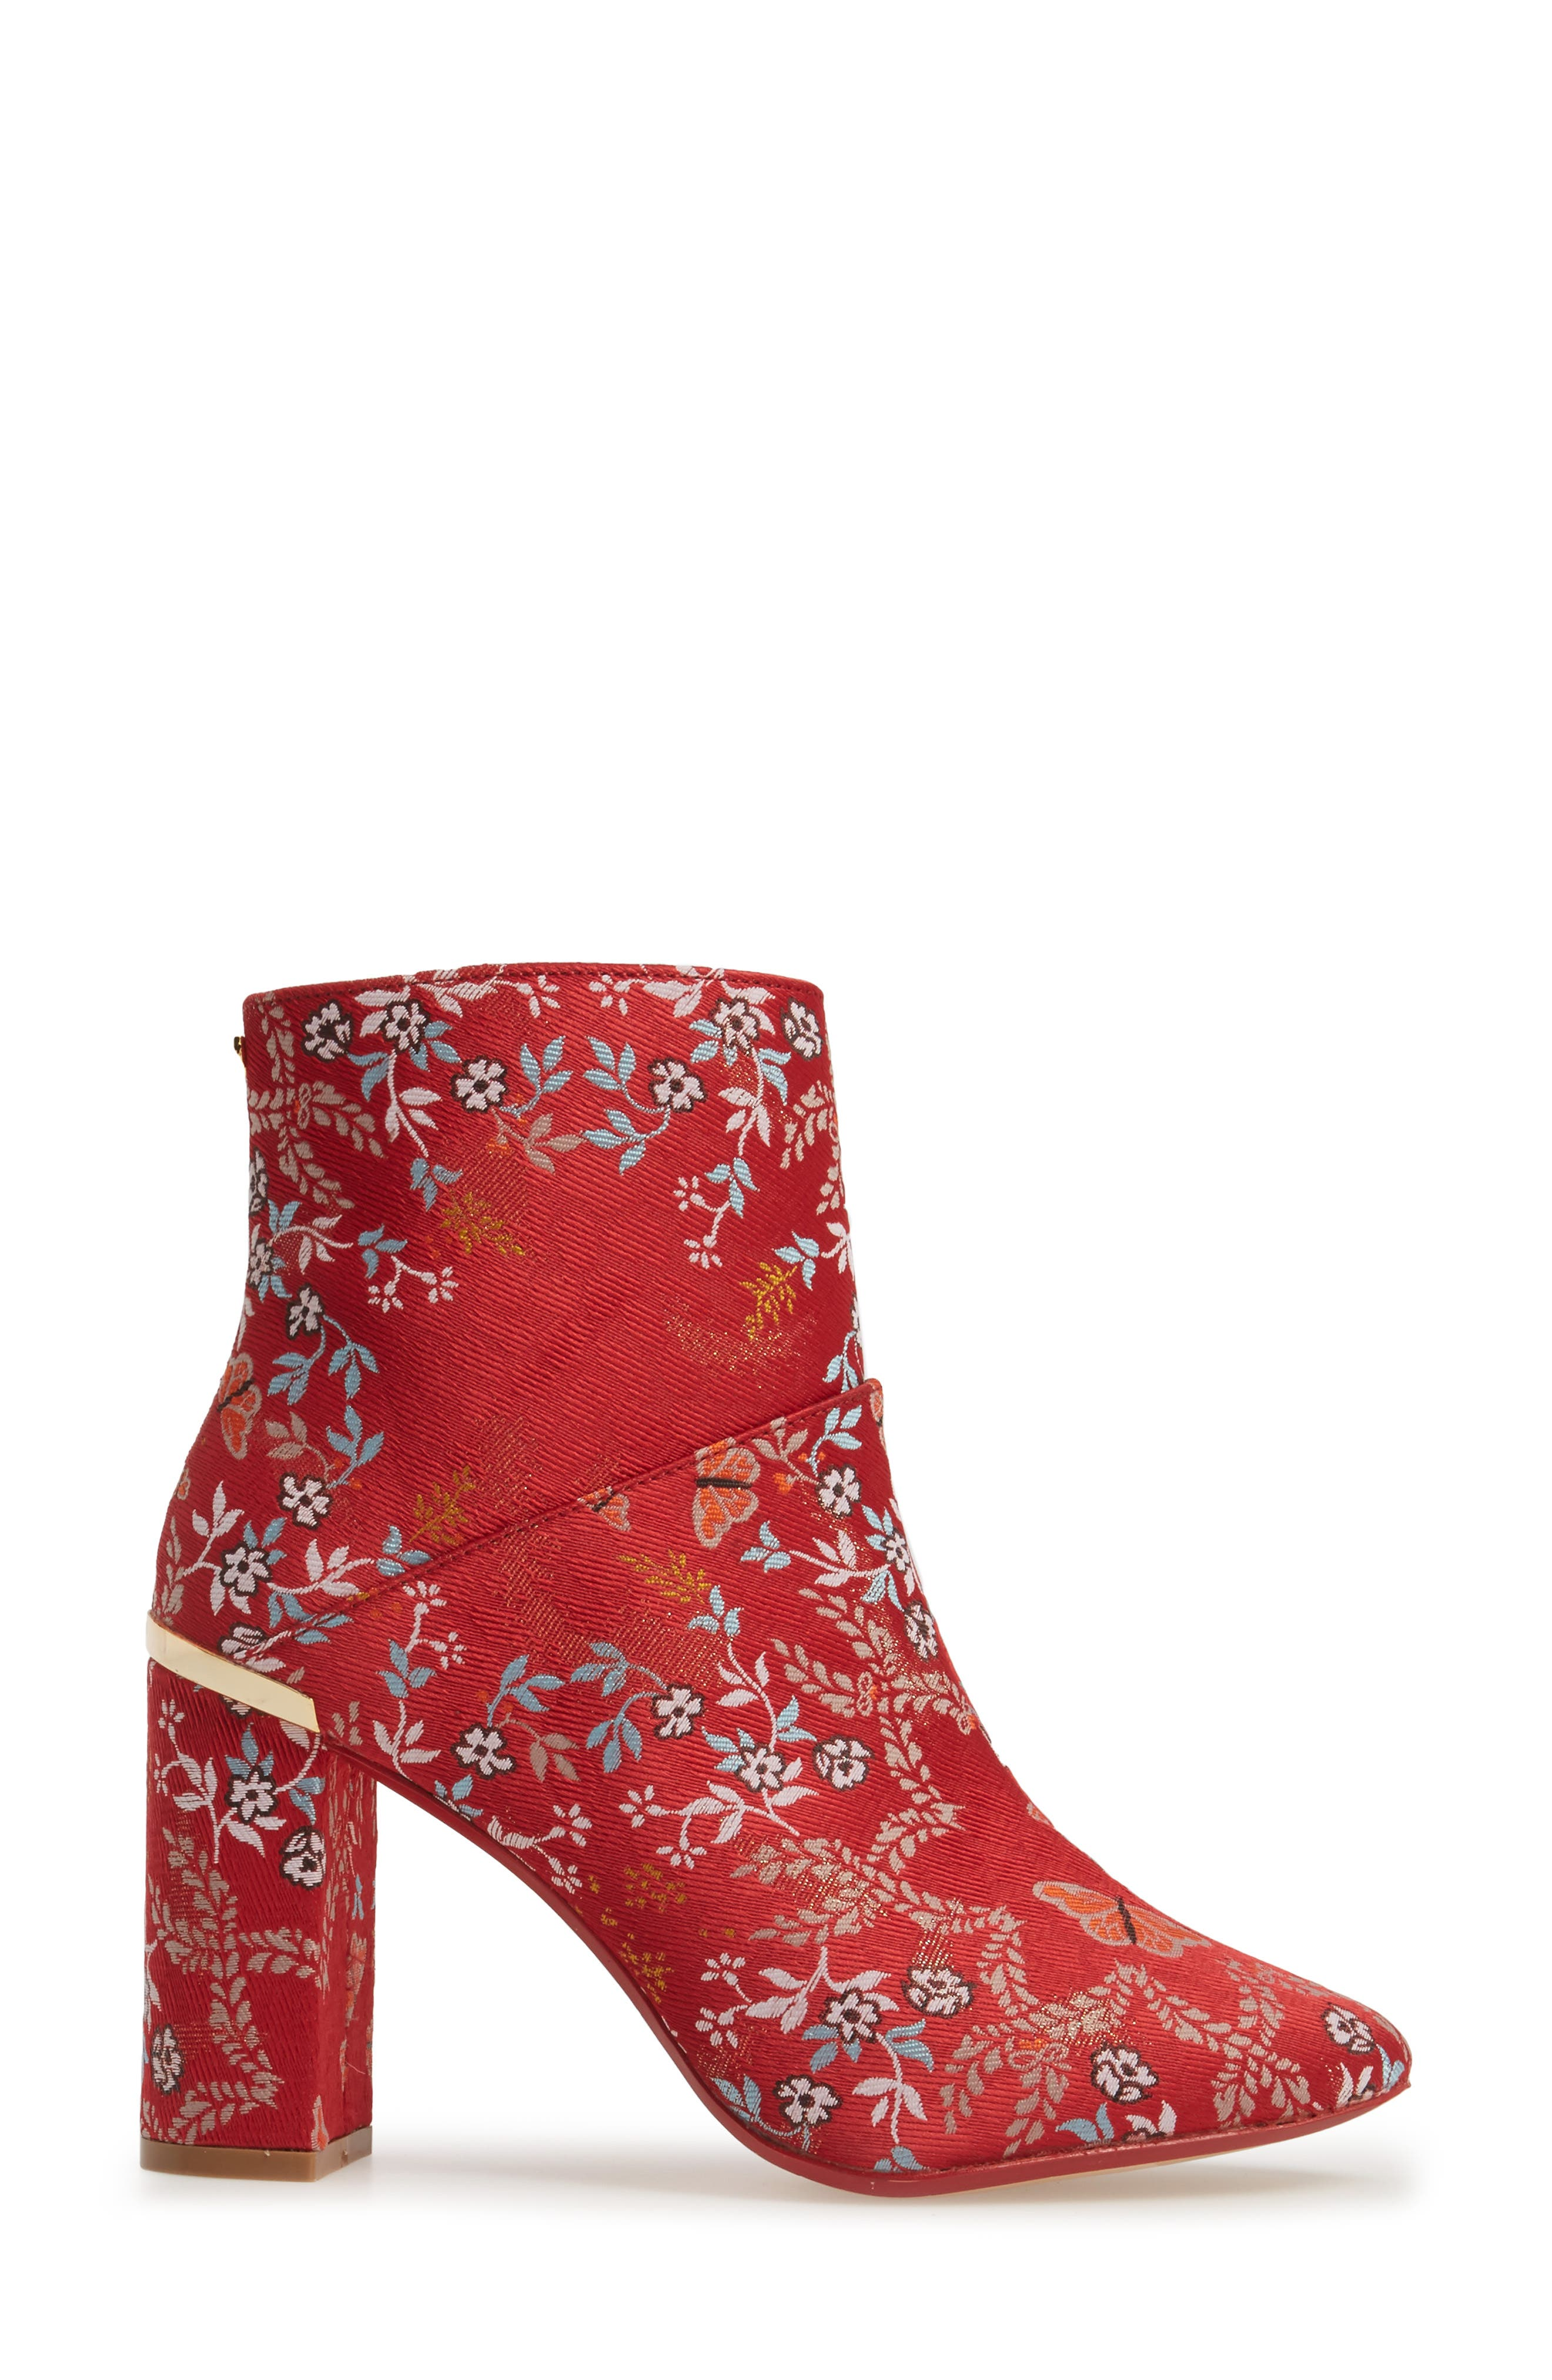 Ishbel Brocade Bootie,                             Alternate thumbnail 3, color,                             Red Kyoto Print